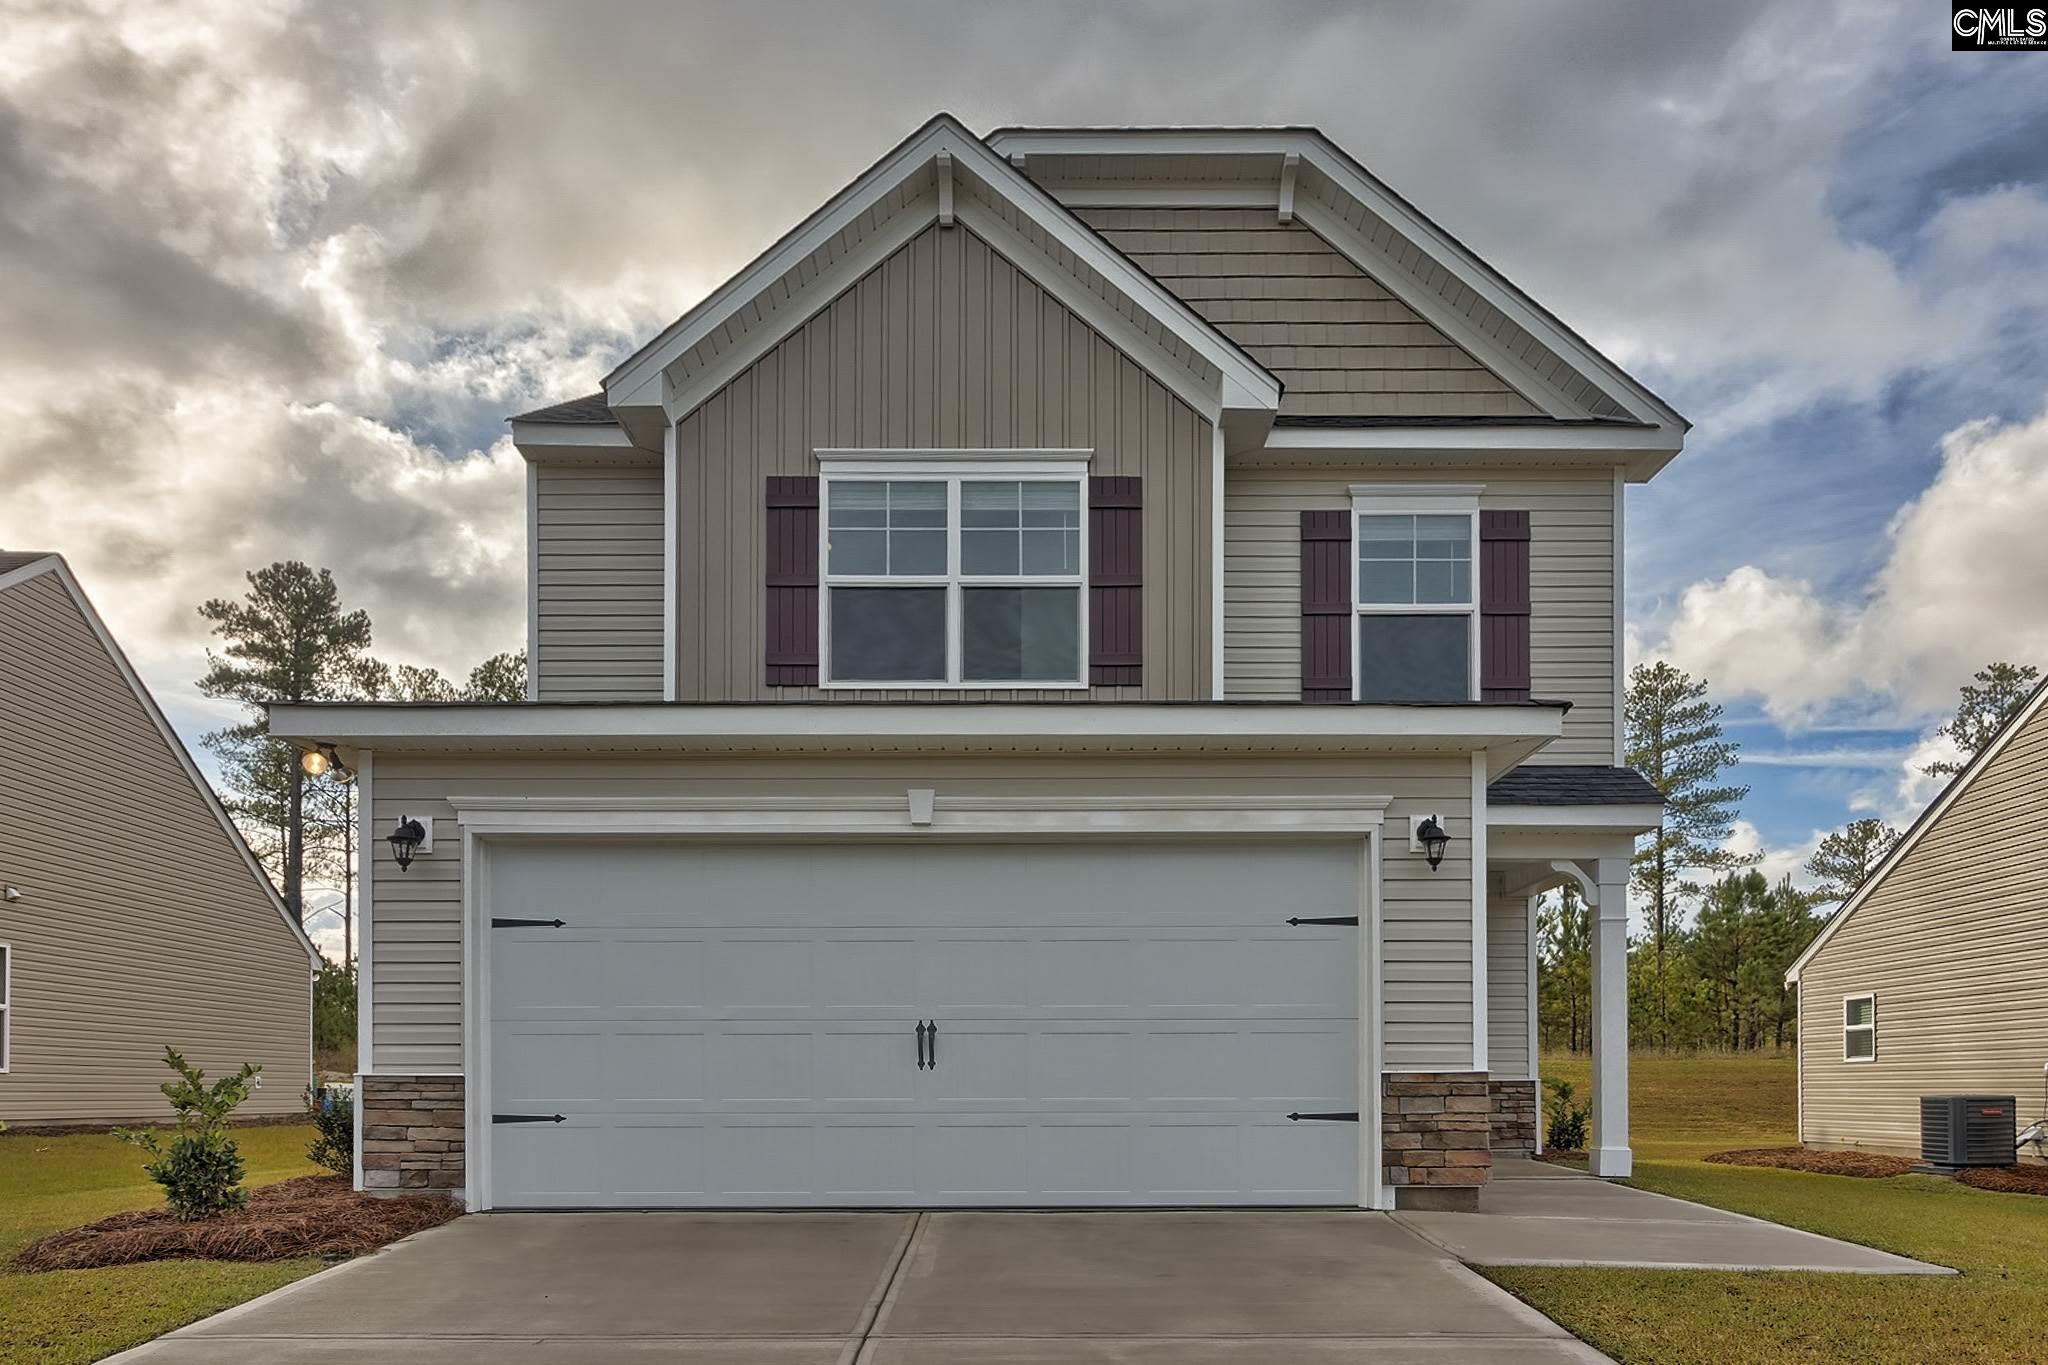 285 Turnfield West Columbia, SC 29170